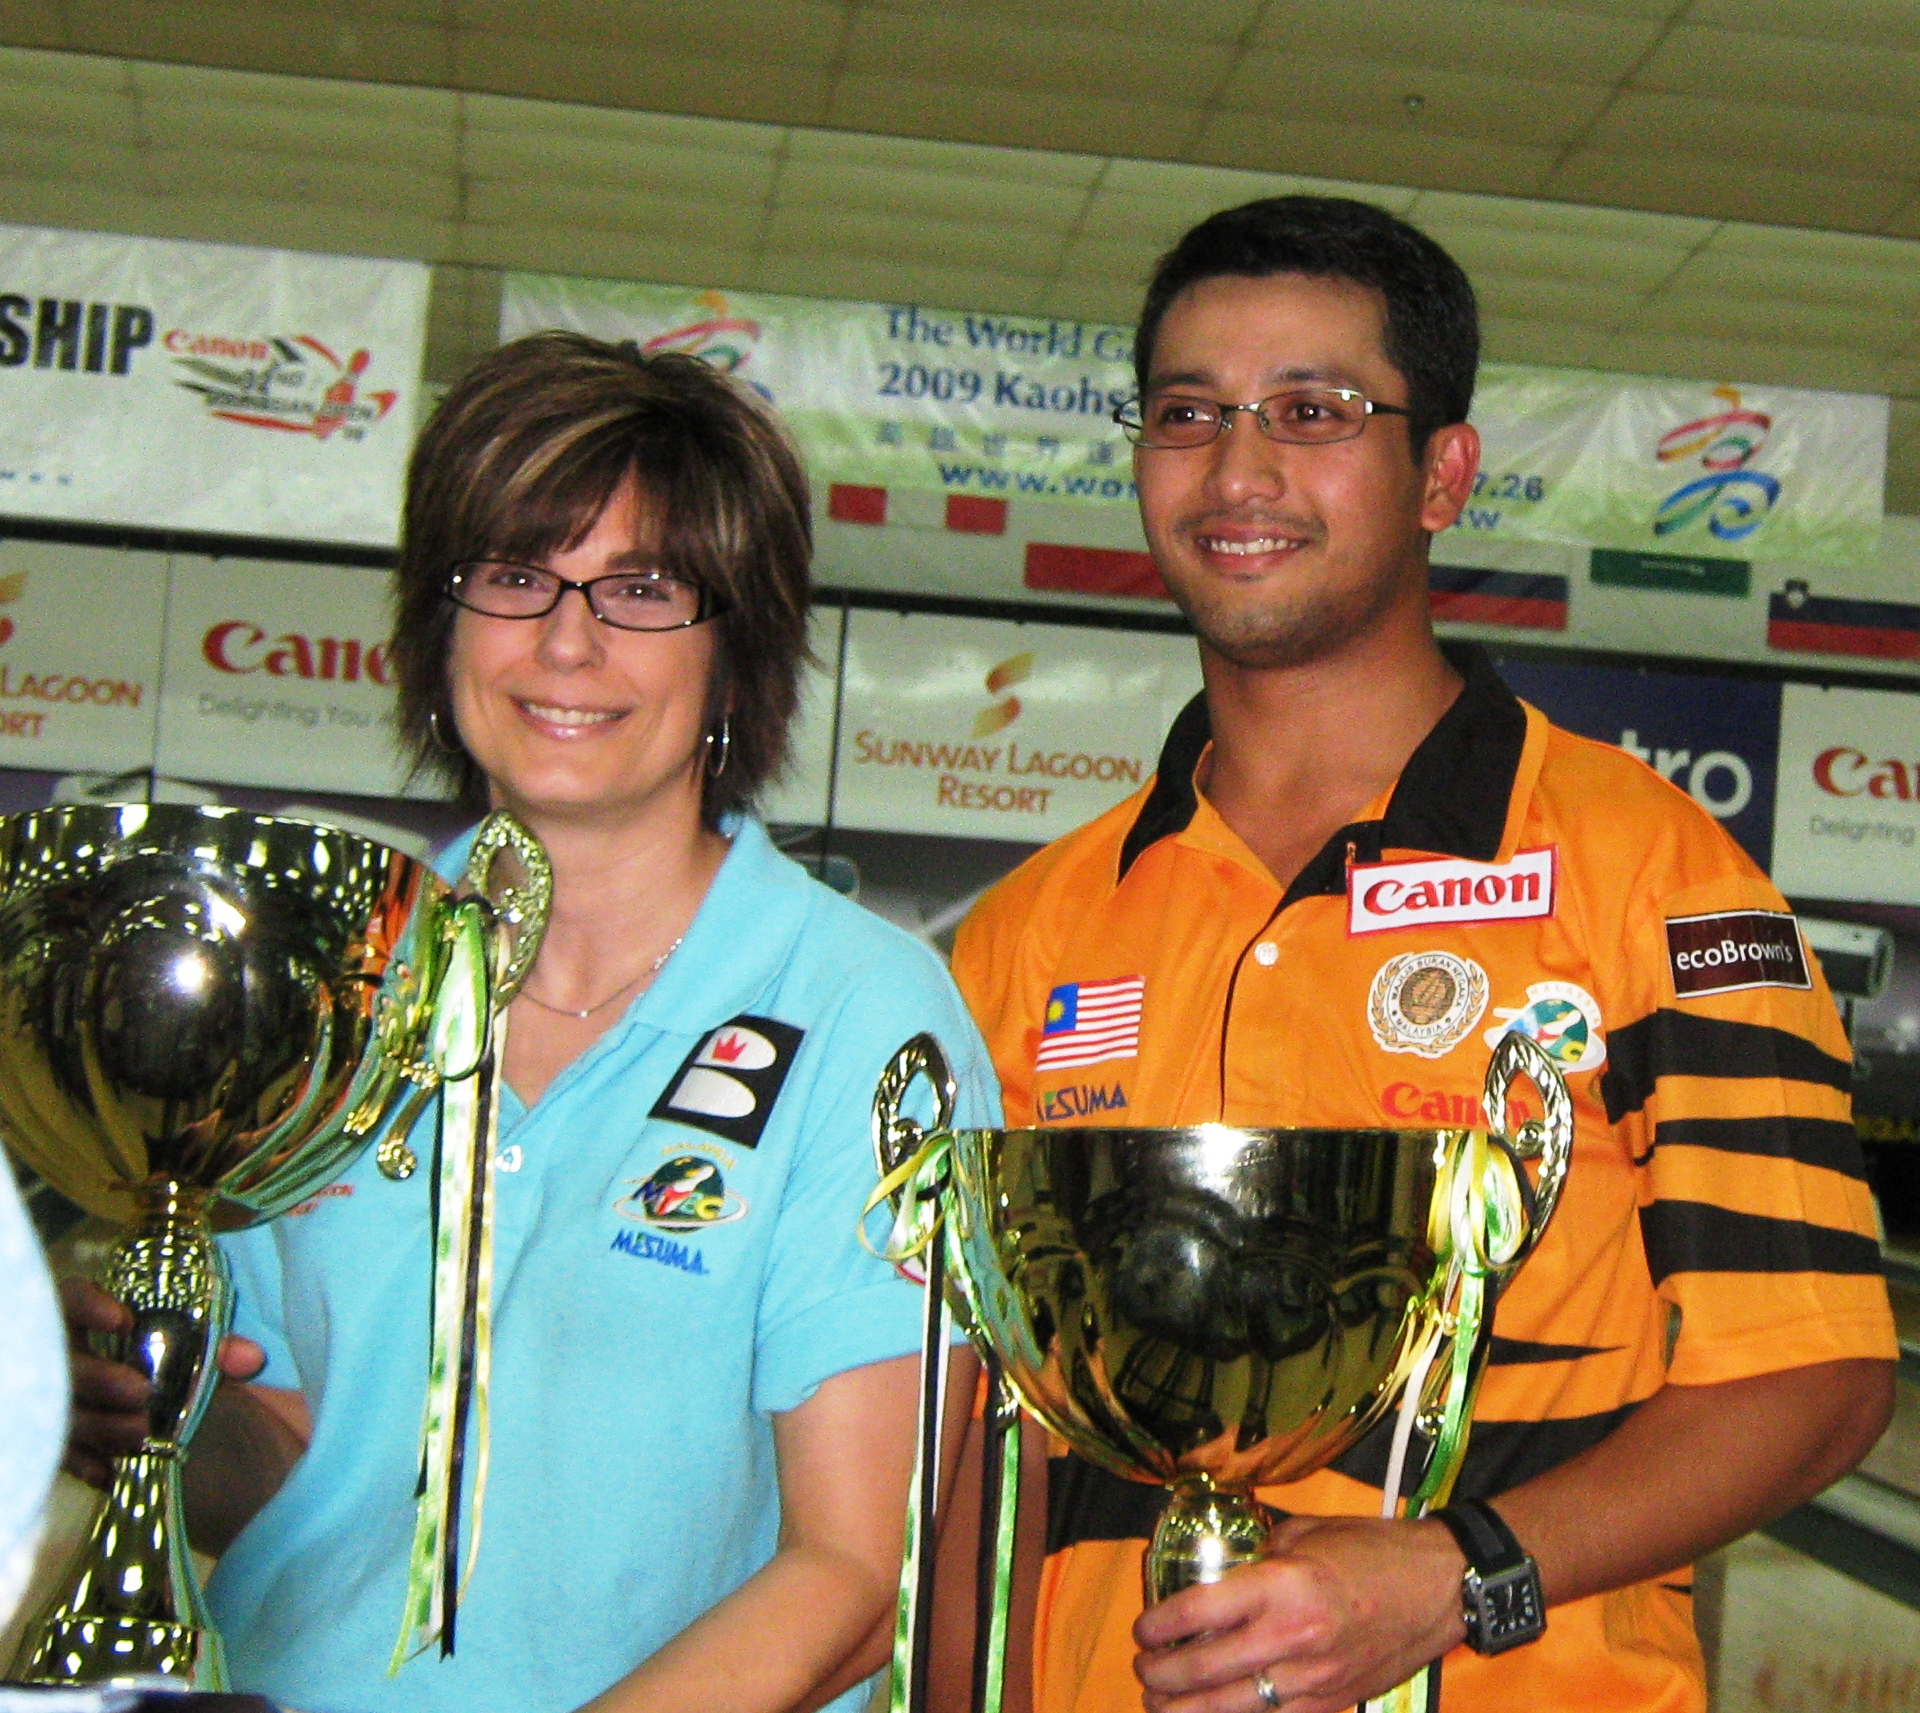 Carolyn and Zulmazran with their Championships trophies